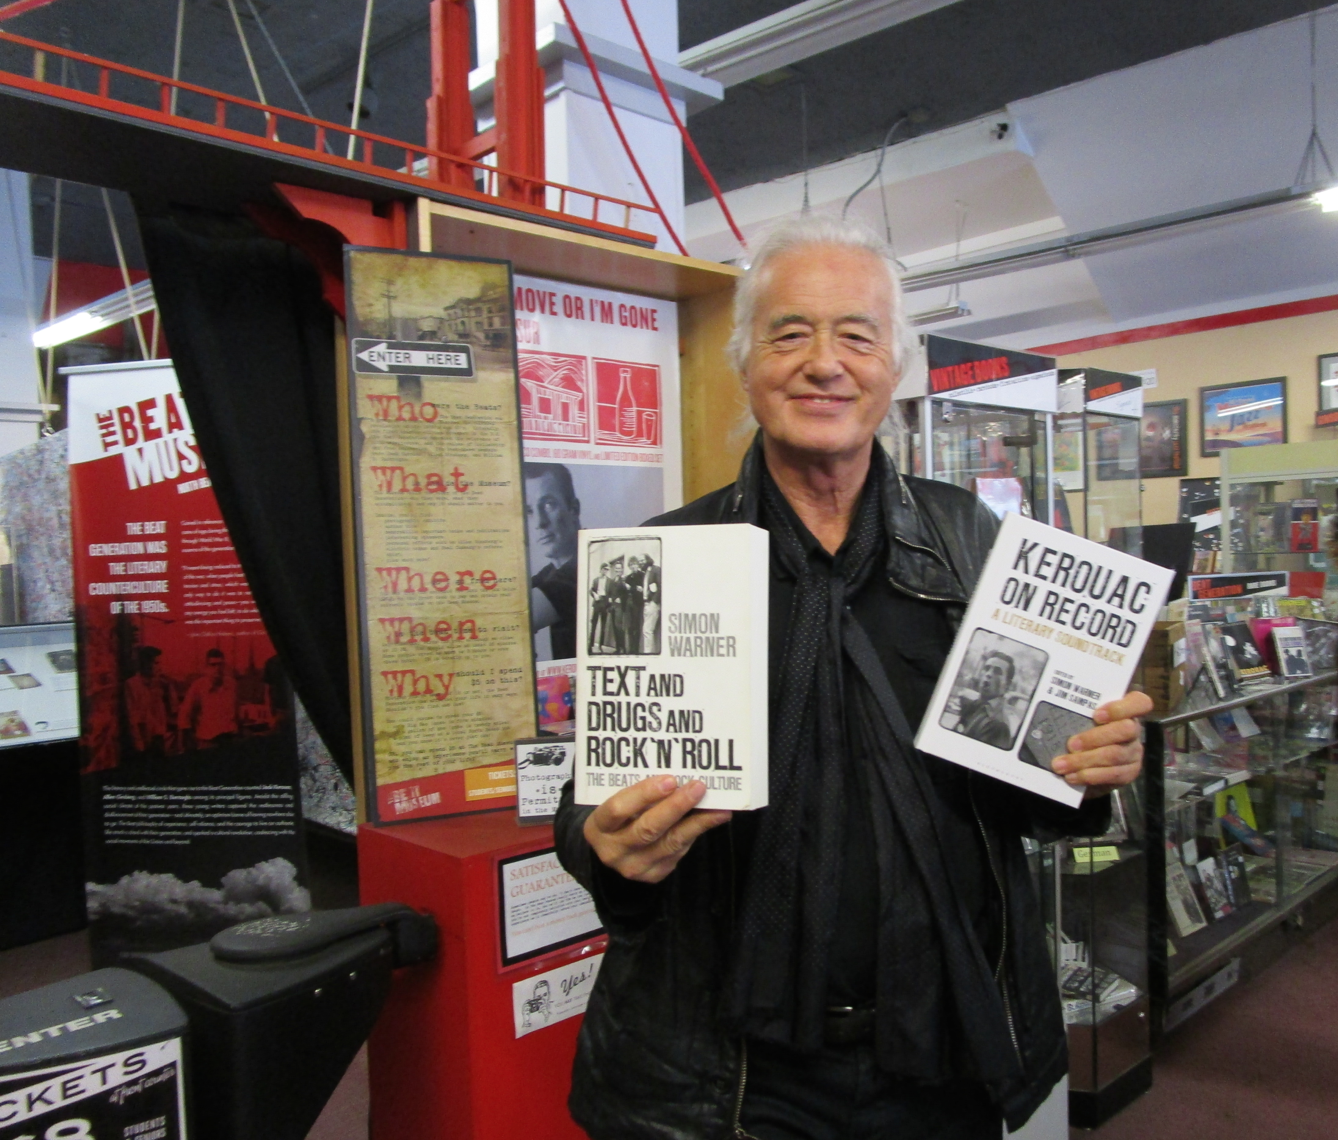 Jimmy Page holding  Kerouac on Record  in his left hand, the book  Simon Warner  and Reimagine Music founder edited for leading publisher Bloomsbury. In Page's right hand is  Simon  Warner's other brilliant work Text and Drugs and Rock and Roll: The Beats and Rock Culture. Also look for poster of film Sampas produced  One Fast Move Or I'm Gone: Kerouac's Big Sur  in the background.